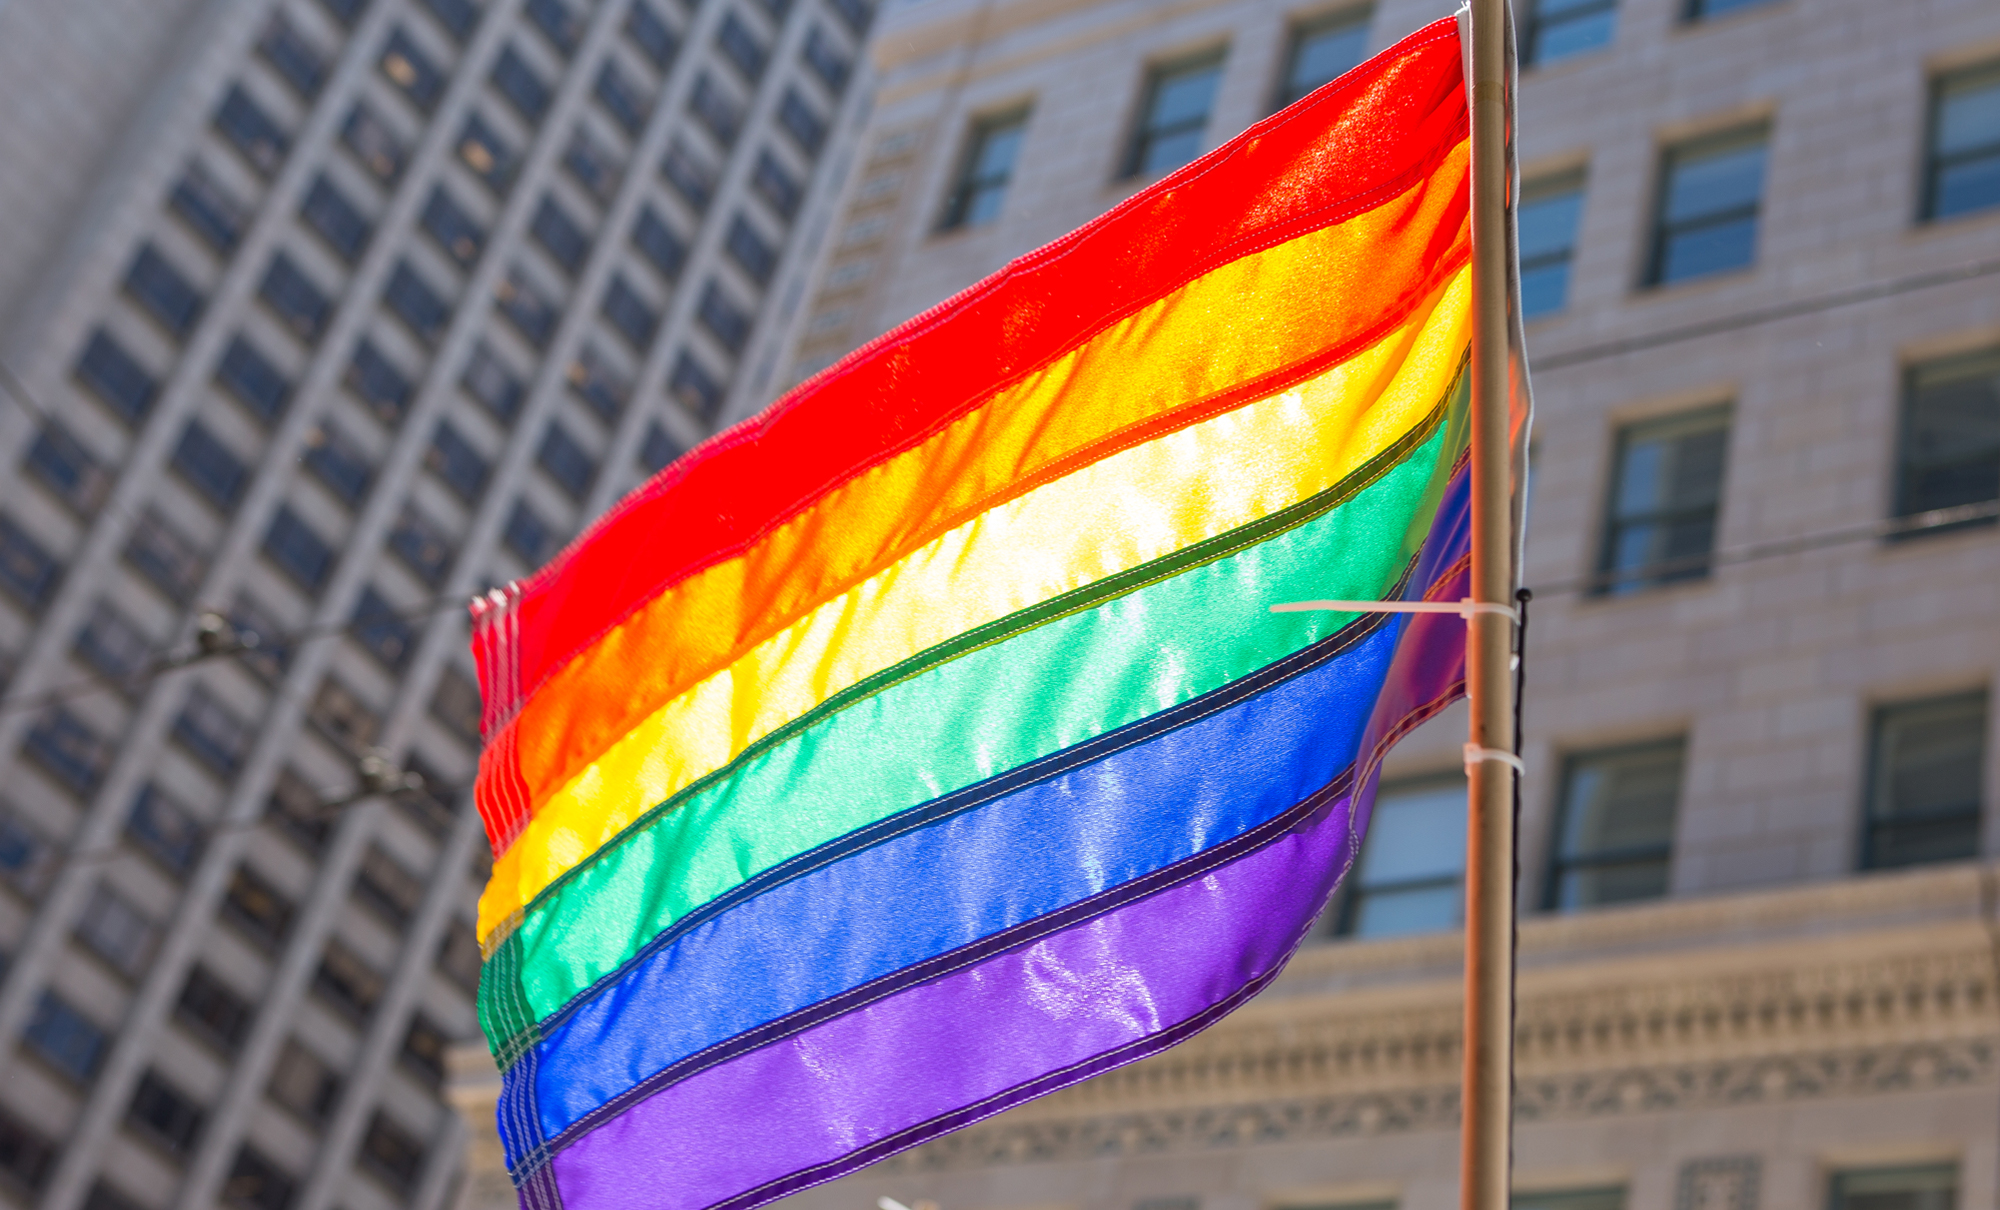 In Support of Landmark LGBTQ Workplace Anti-Discrimination Decision